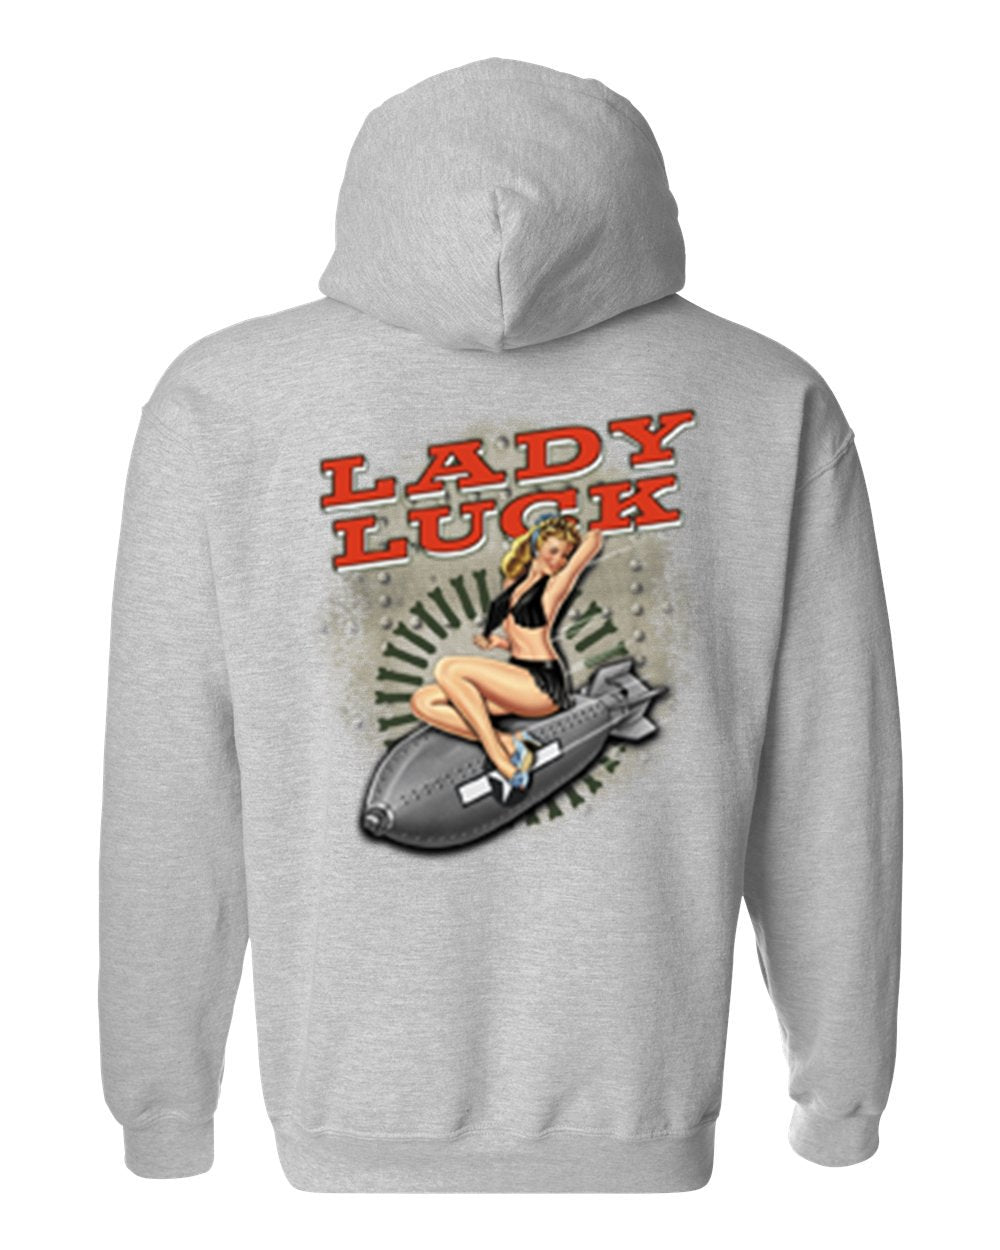 Men's/Unisex Pullover Hoodie S*xy Vintage Lady Luck On Navy Bomb